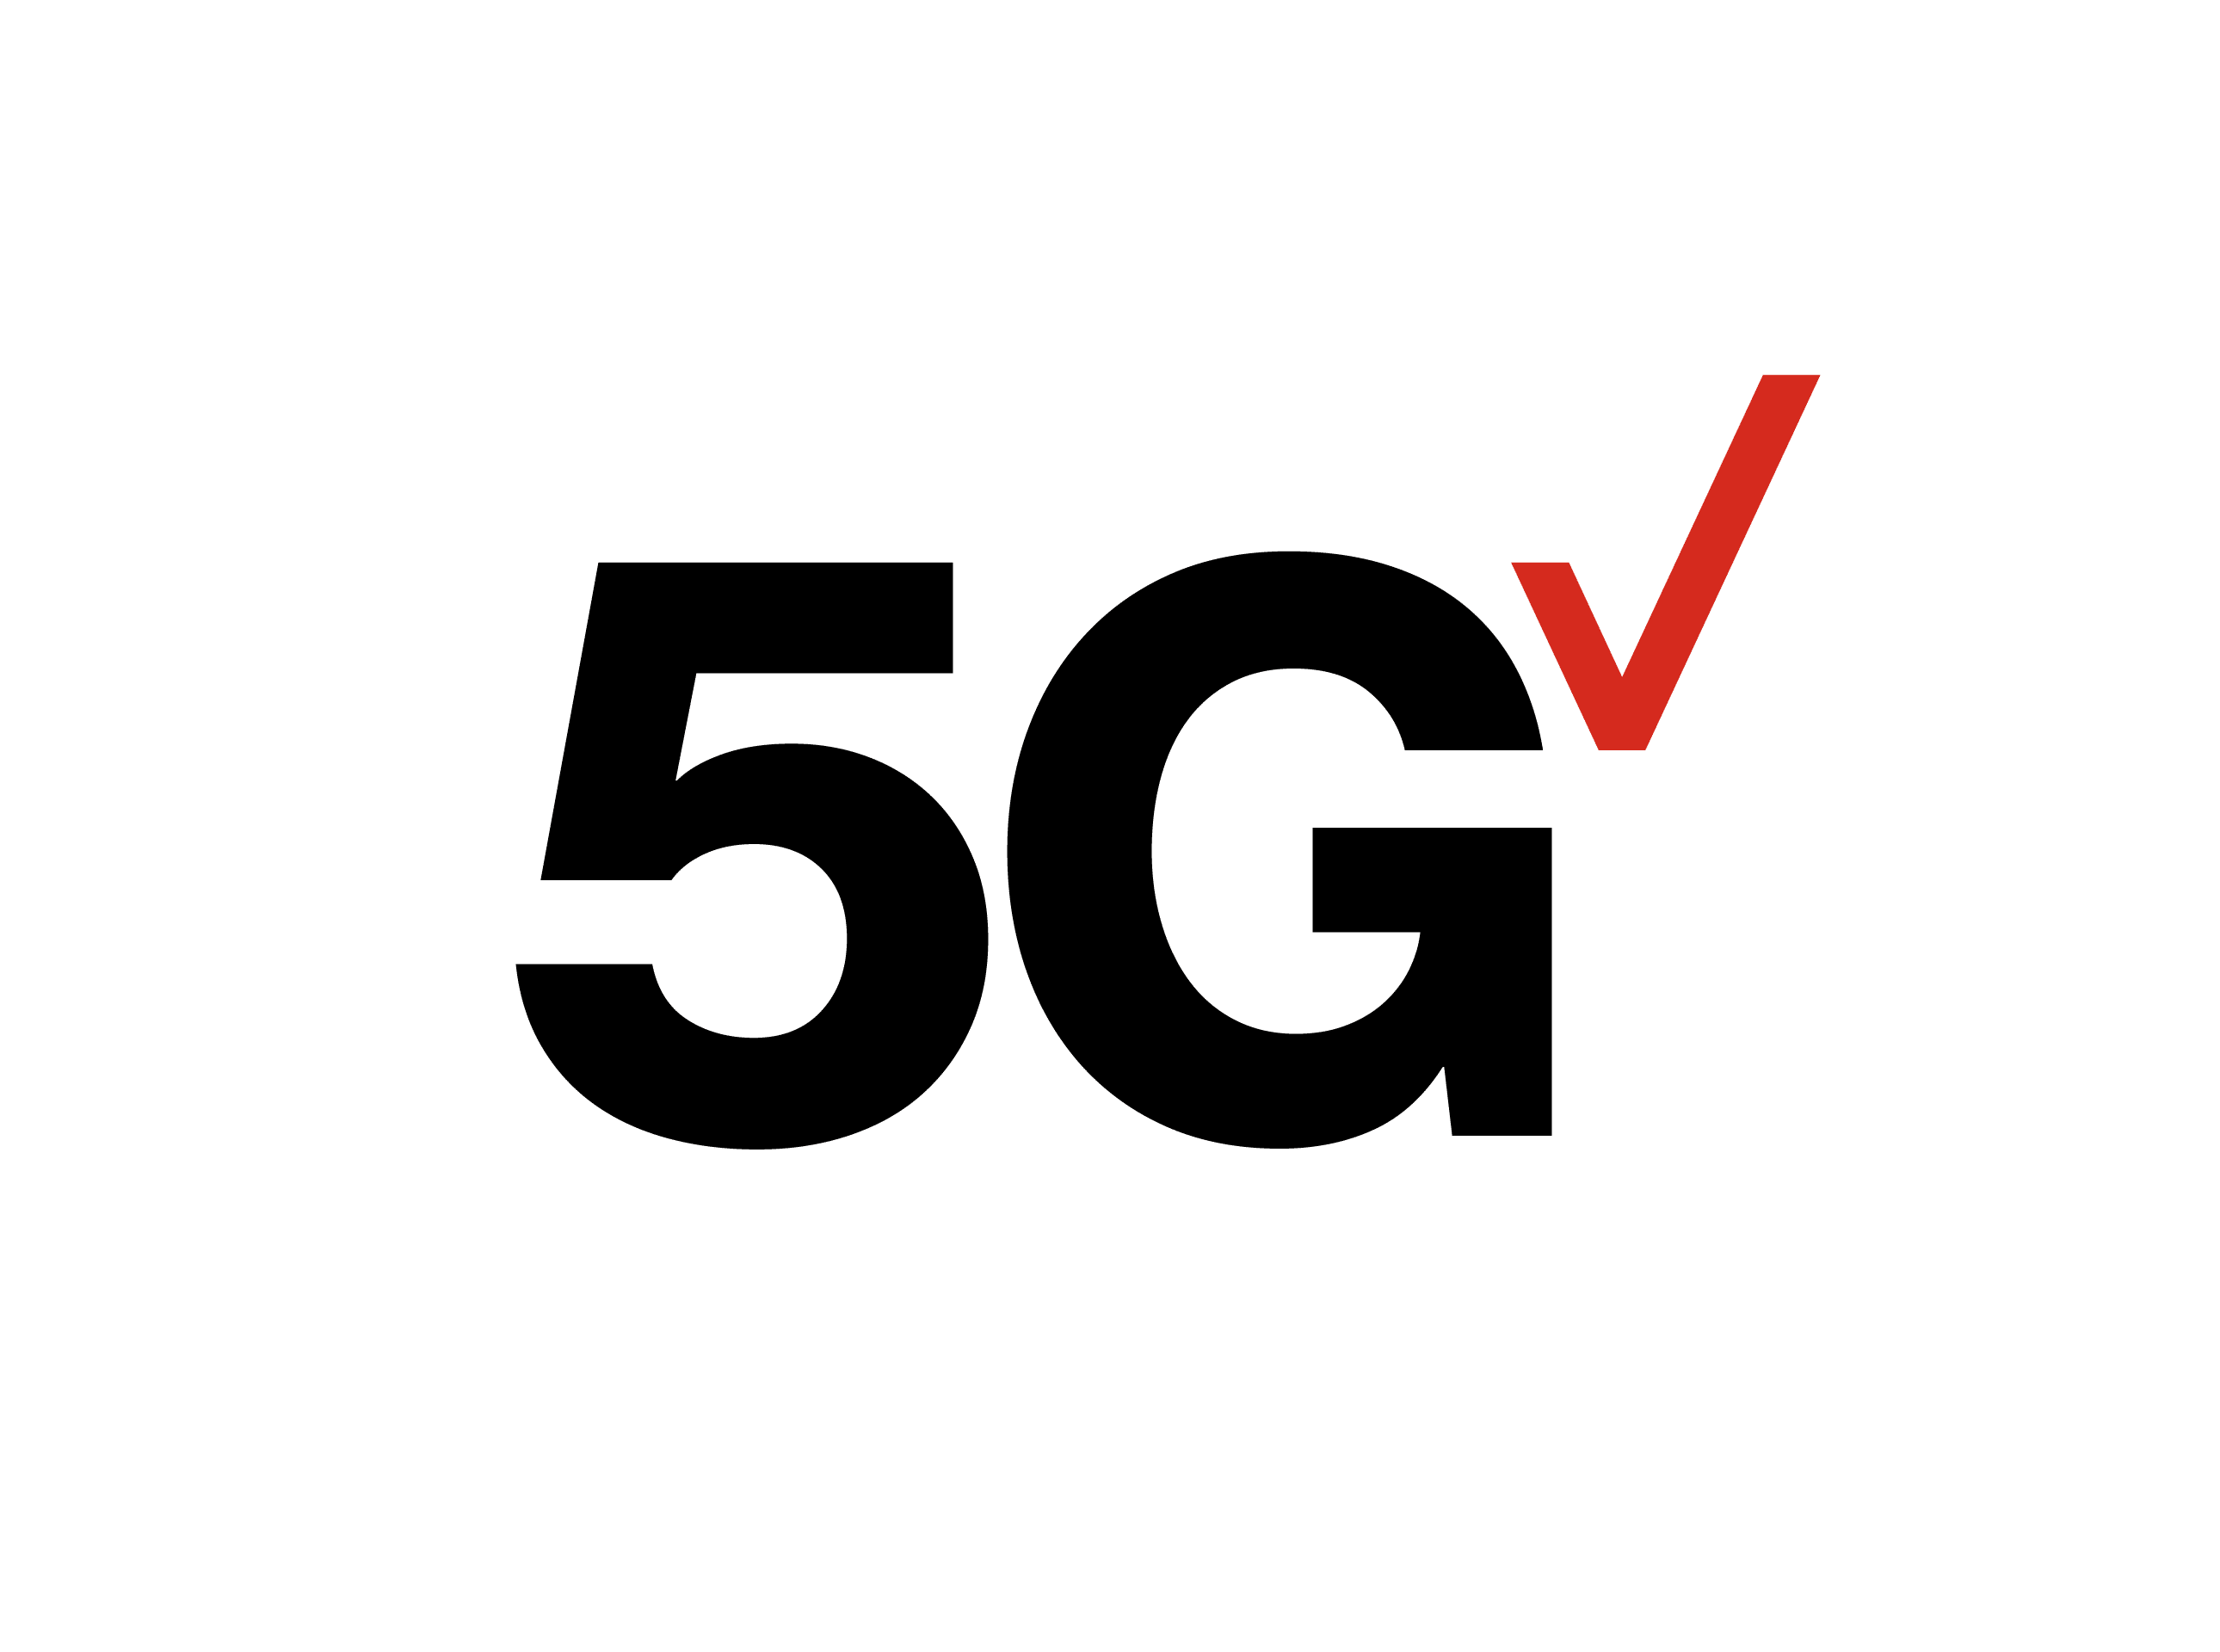 Next up For CRE Owners: Accommodating 5G Networks Verizon, AT&T Complete Successful 5G Data Transmissions